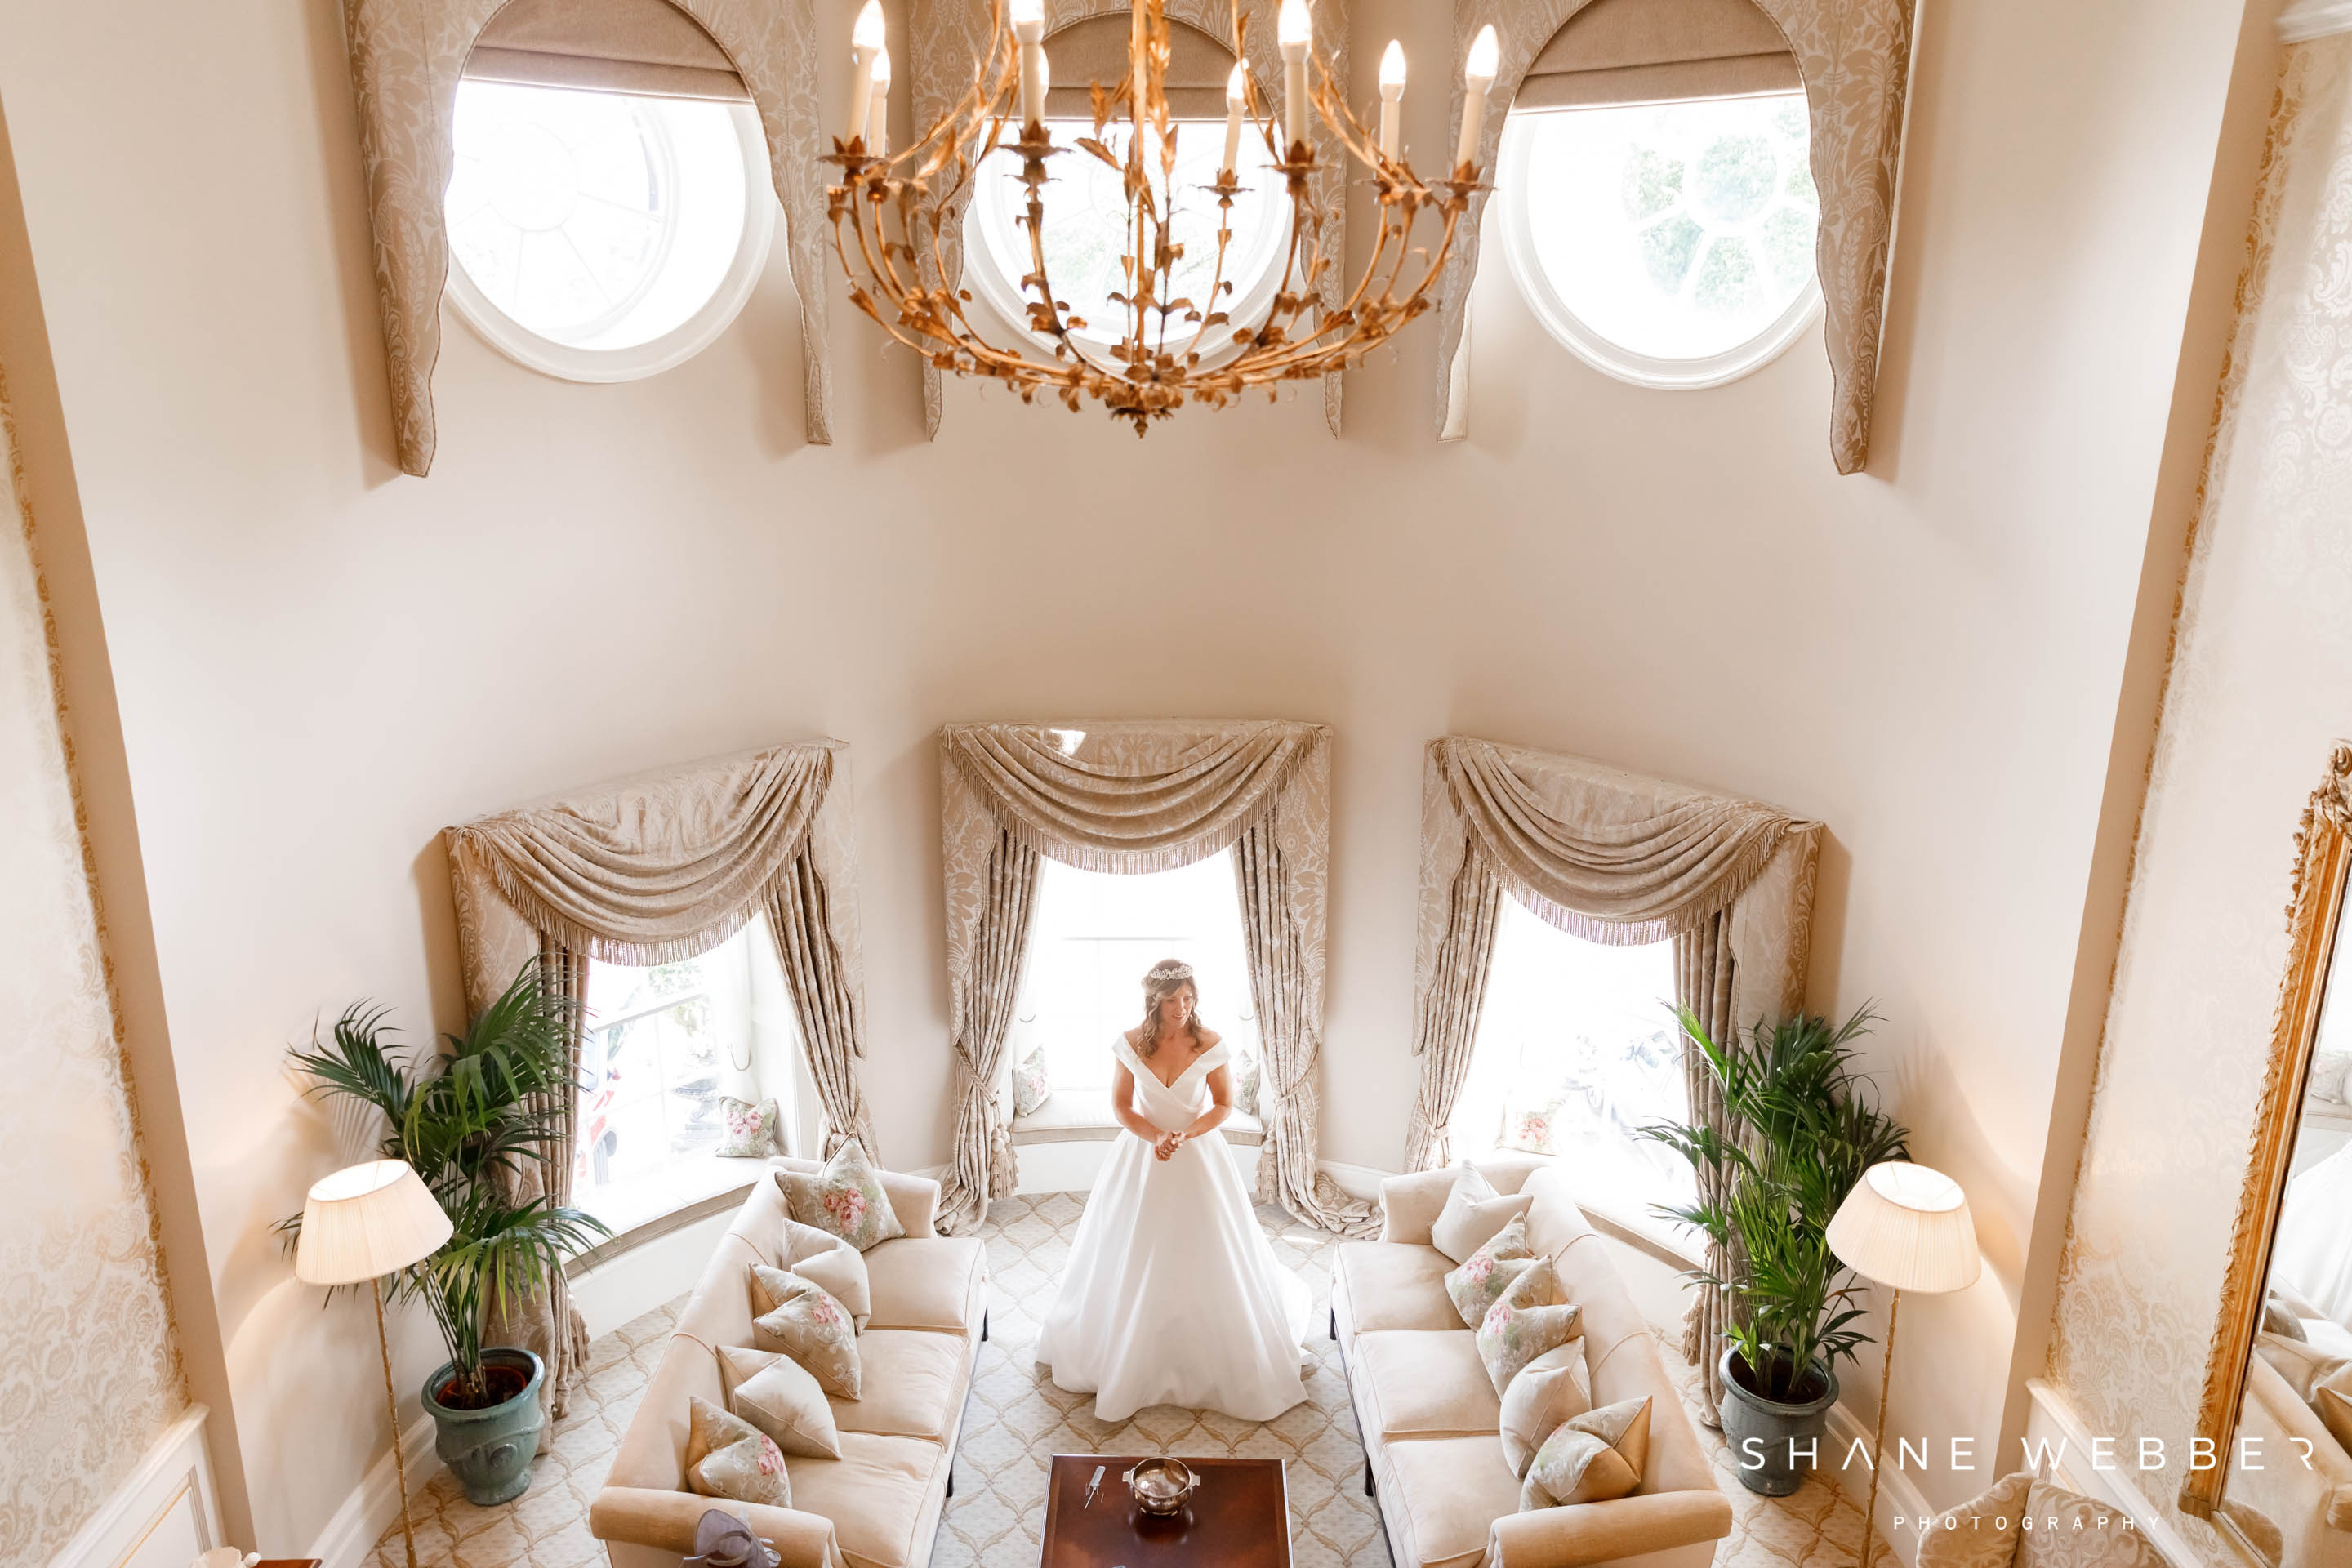 Grantley Hall wedding photography in the bridal suite